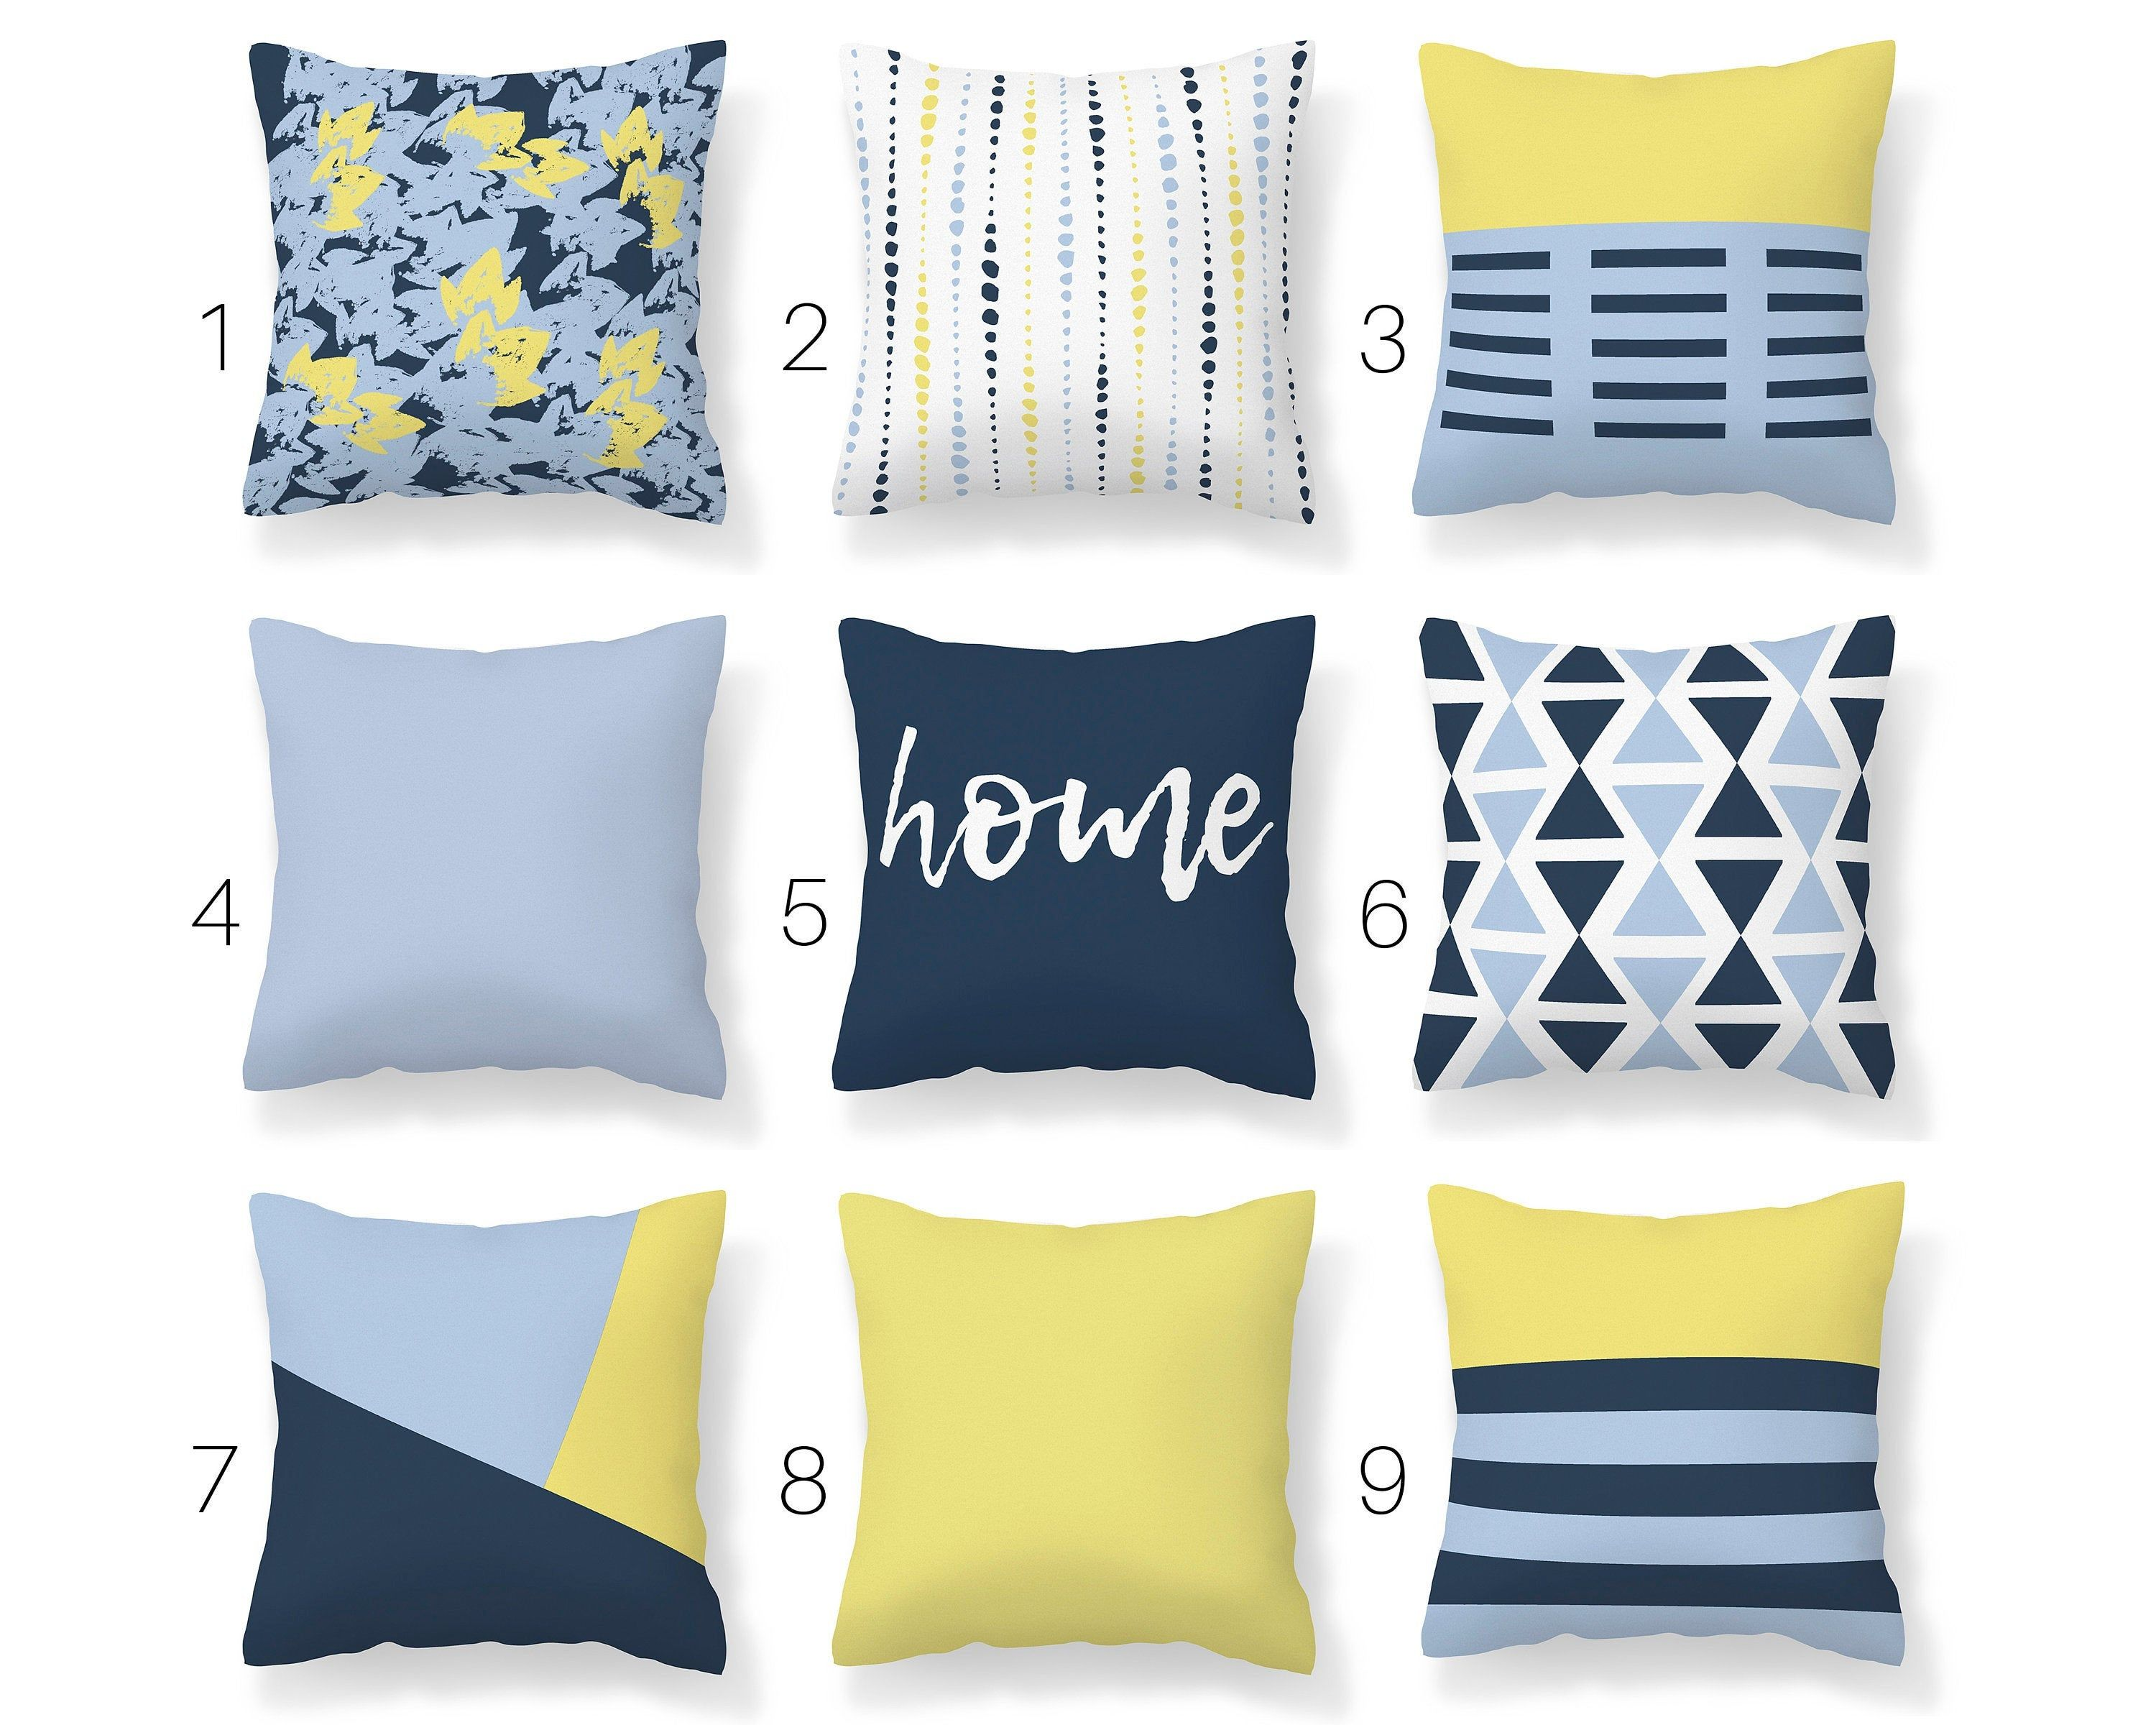 Navy Light Blue Yellow Throw Pillow Cover Mix And Match Pillow Blue Yellow Spring Decor Unique Couch Cushion In 2020 Yellow Throw Pillows Blue Pillows Yellow Throw Pillow Covers